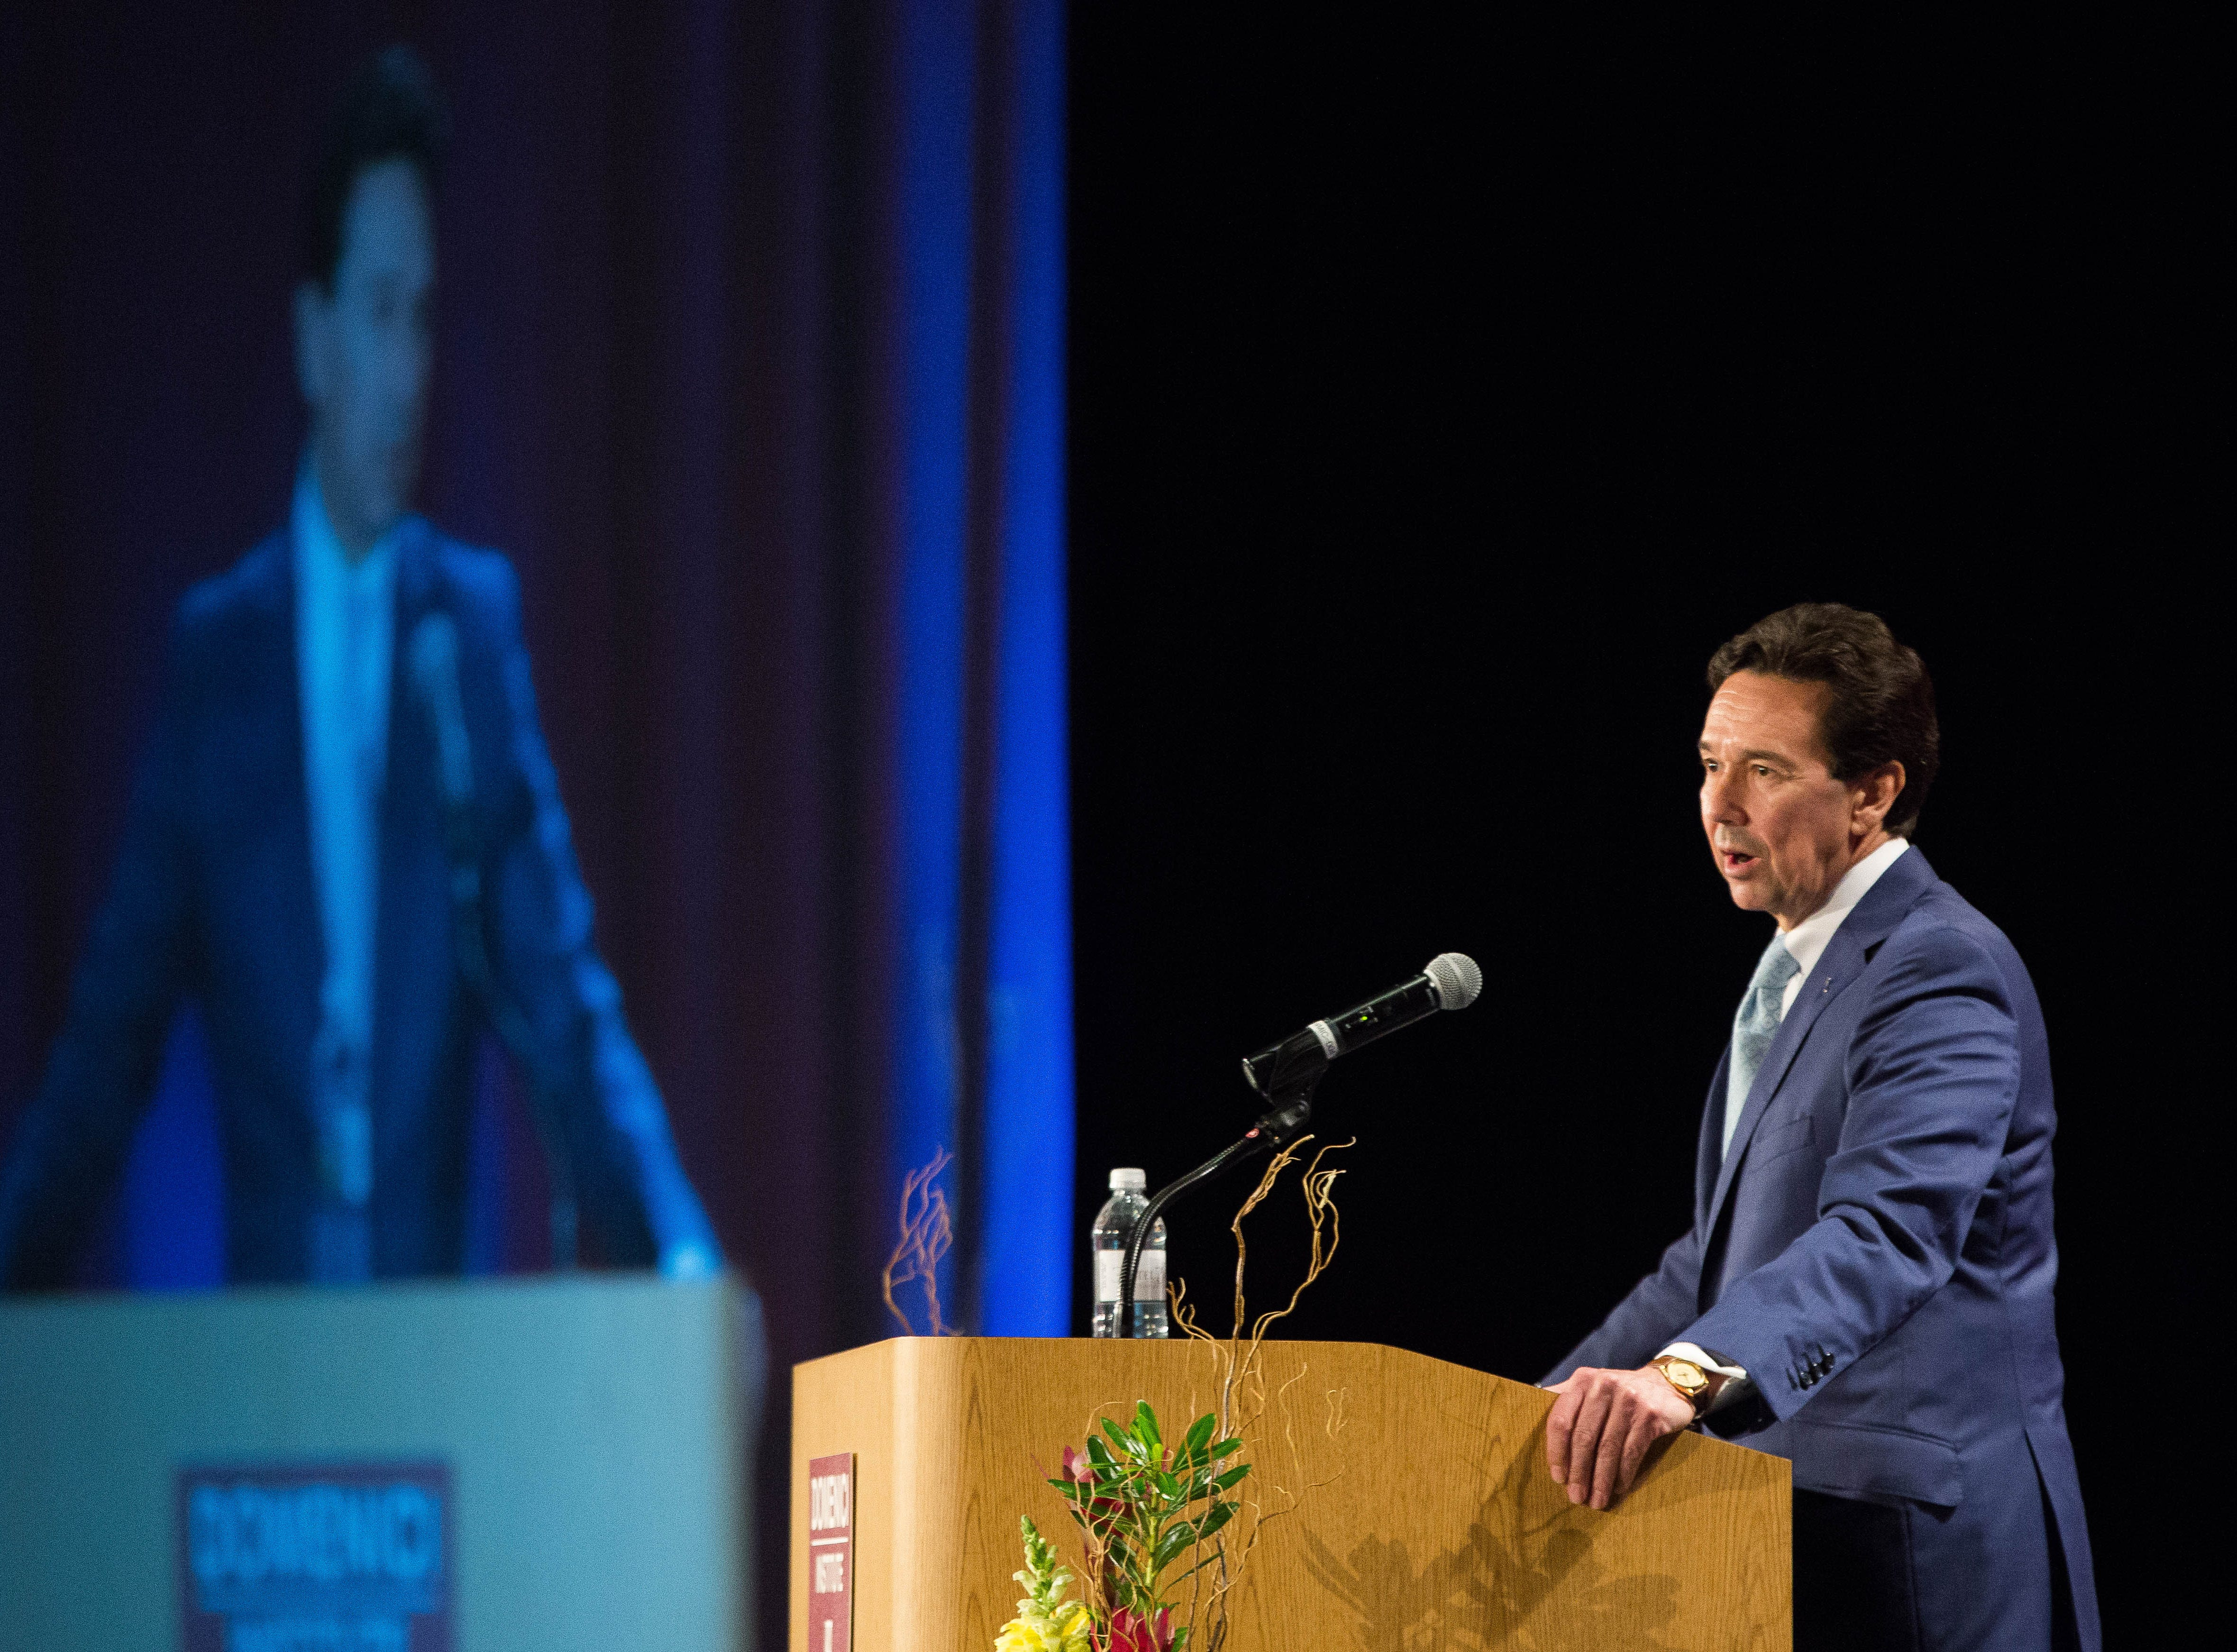 Jon Barela, chief executive officer of the Borderplex Alliance, speaks to the attendees at the 2018 Domenici Public Policy Conference, Wednesday,  Sept. 12, 2018 at the Las Cruces Convention Center.